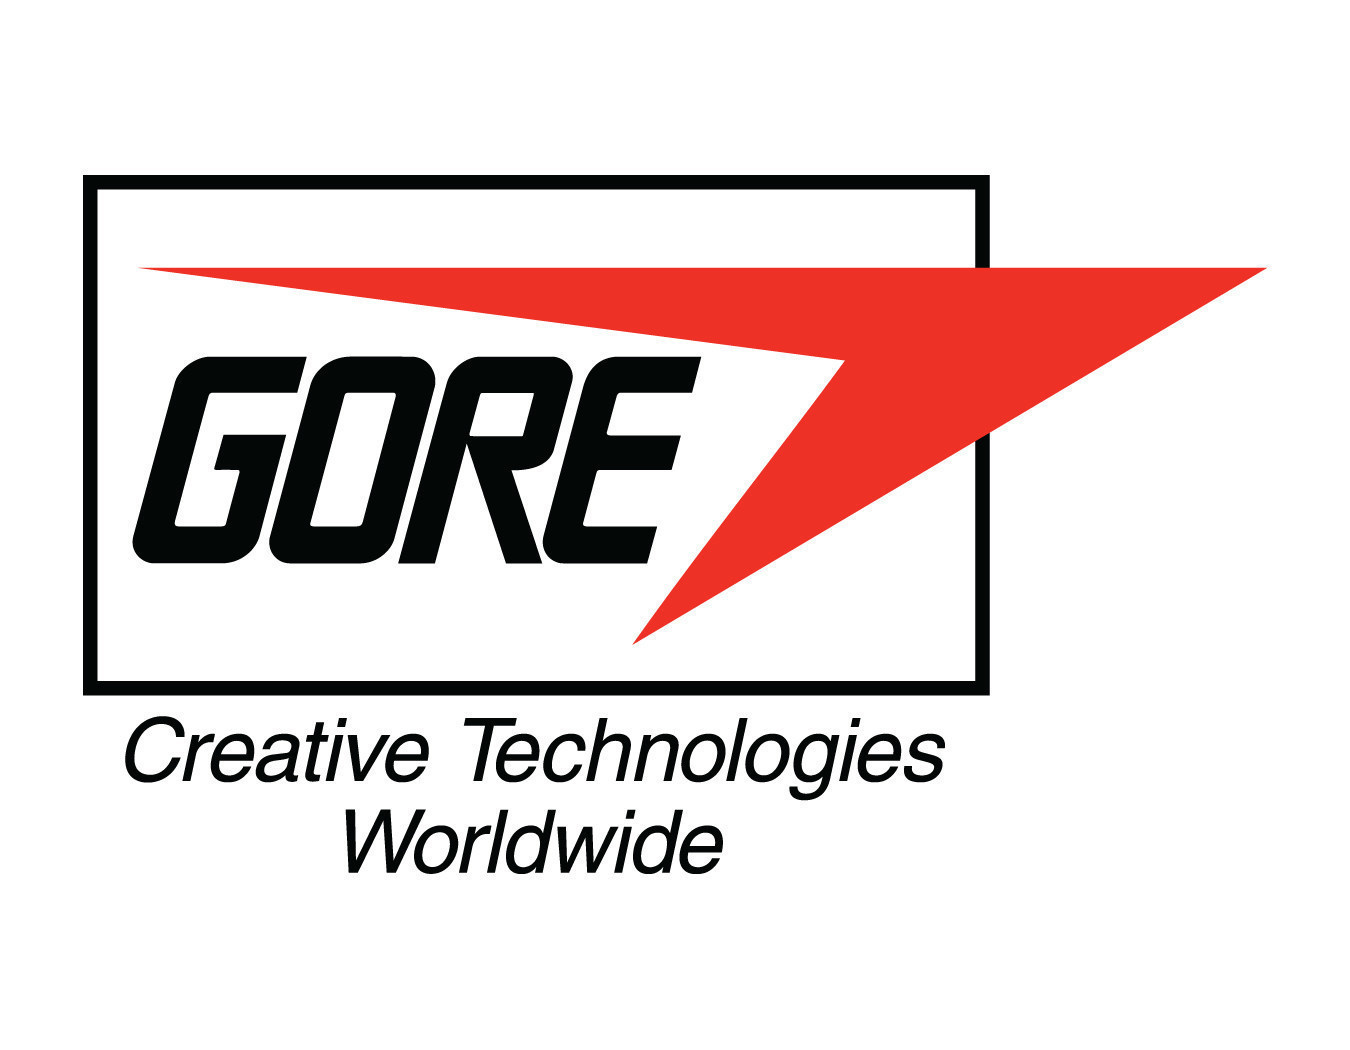 a profile overview of wl gore associates inc Inc is a profile overview of wl gore associates inc as well known for its unique organizational style as it is for its unique products if you're interested in reading.